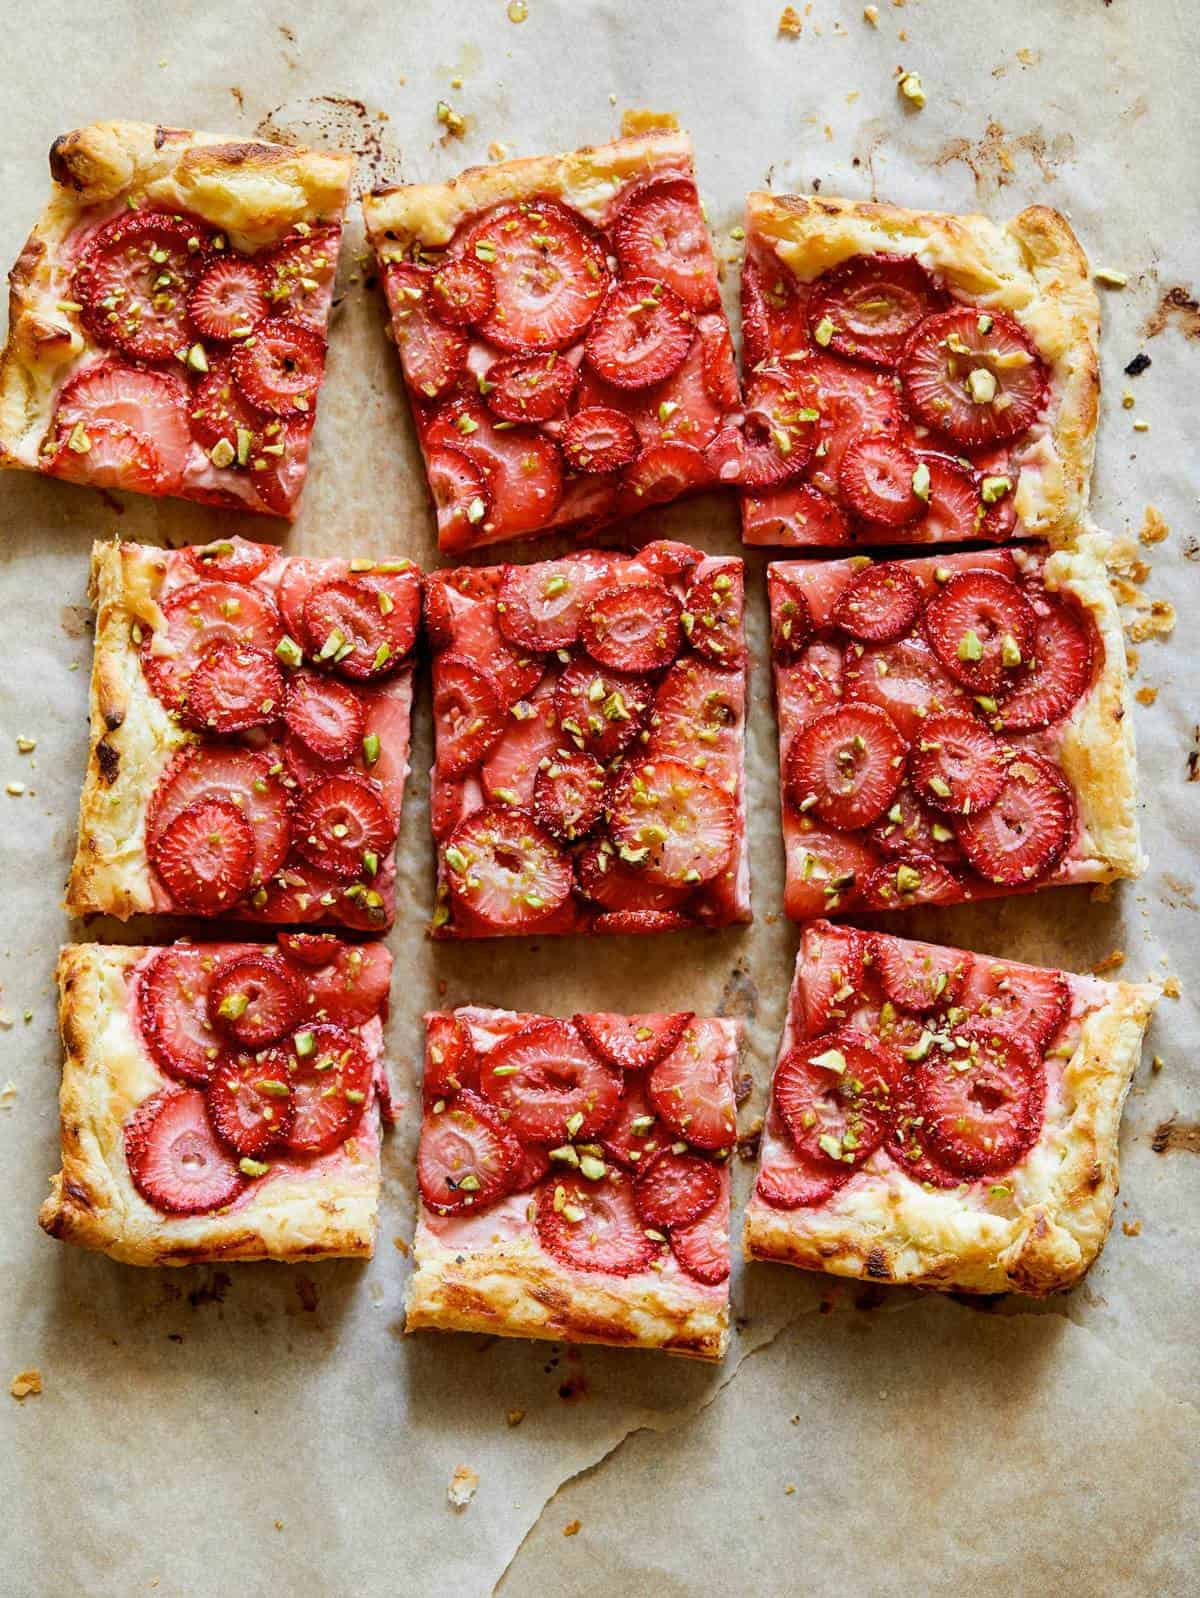 Strawberry Tart with pistachios on a parchment sheet.